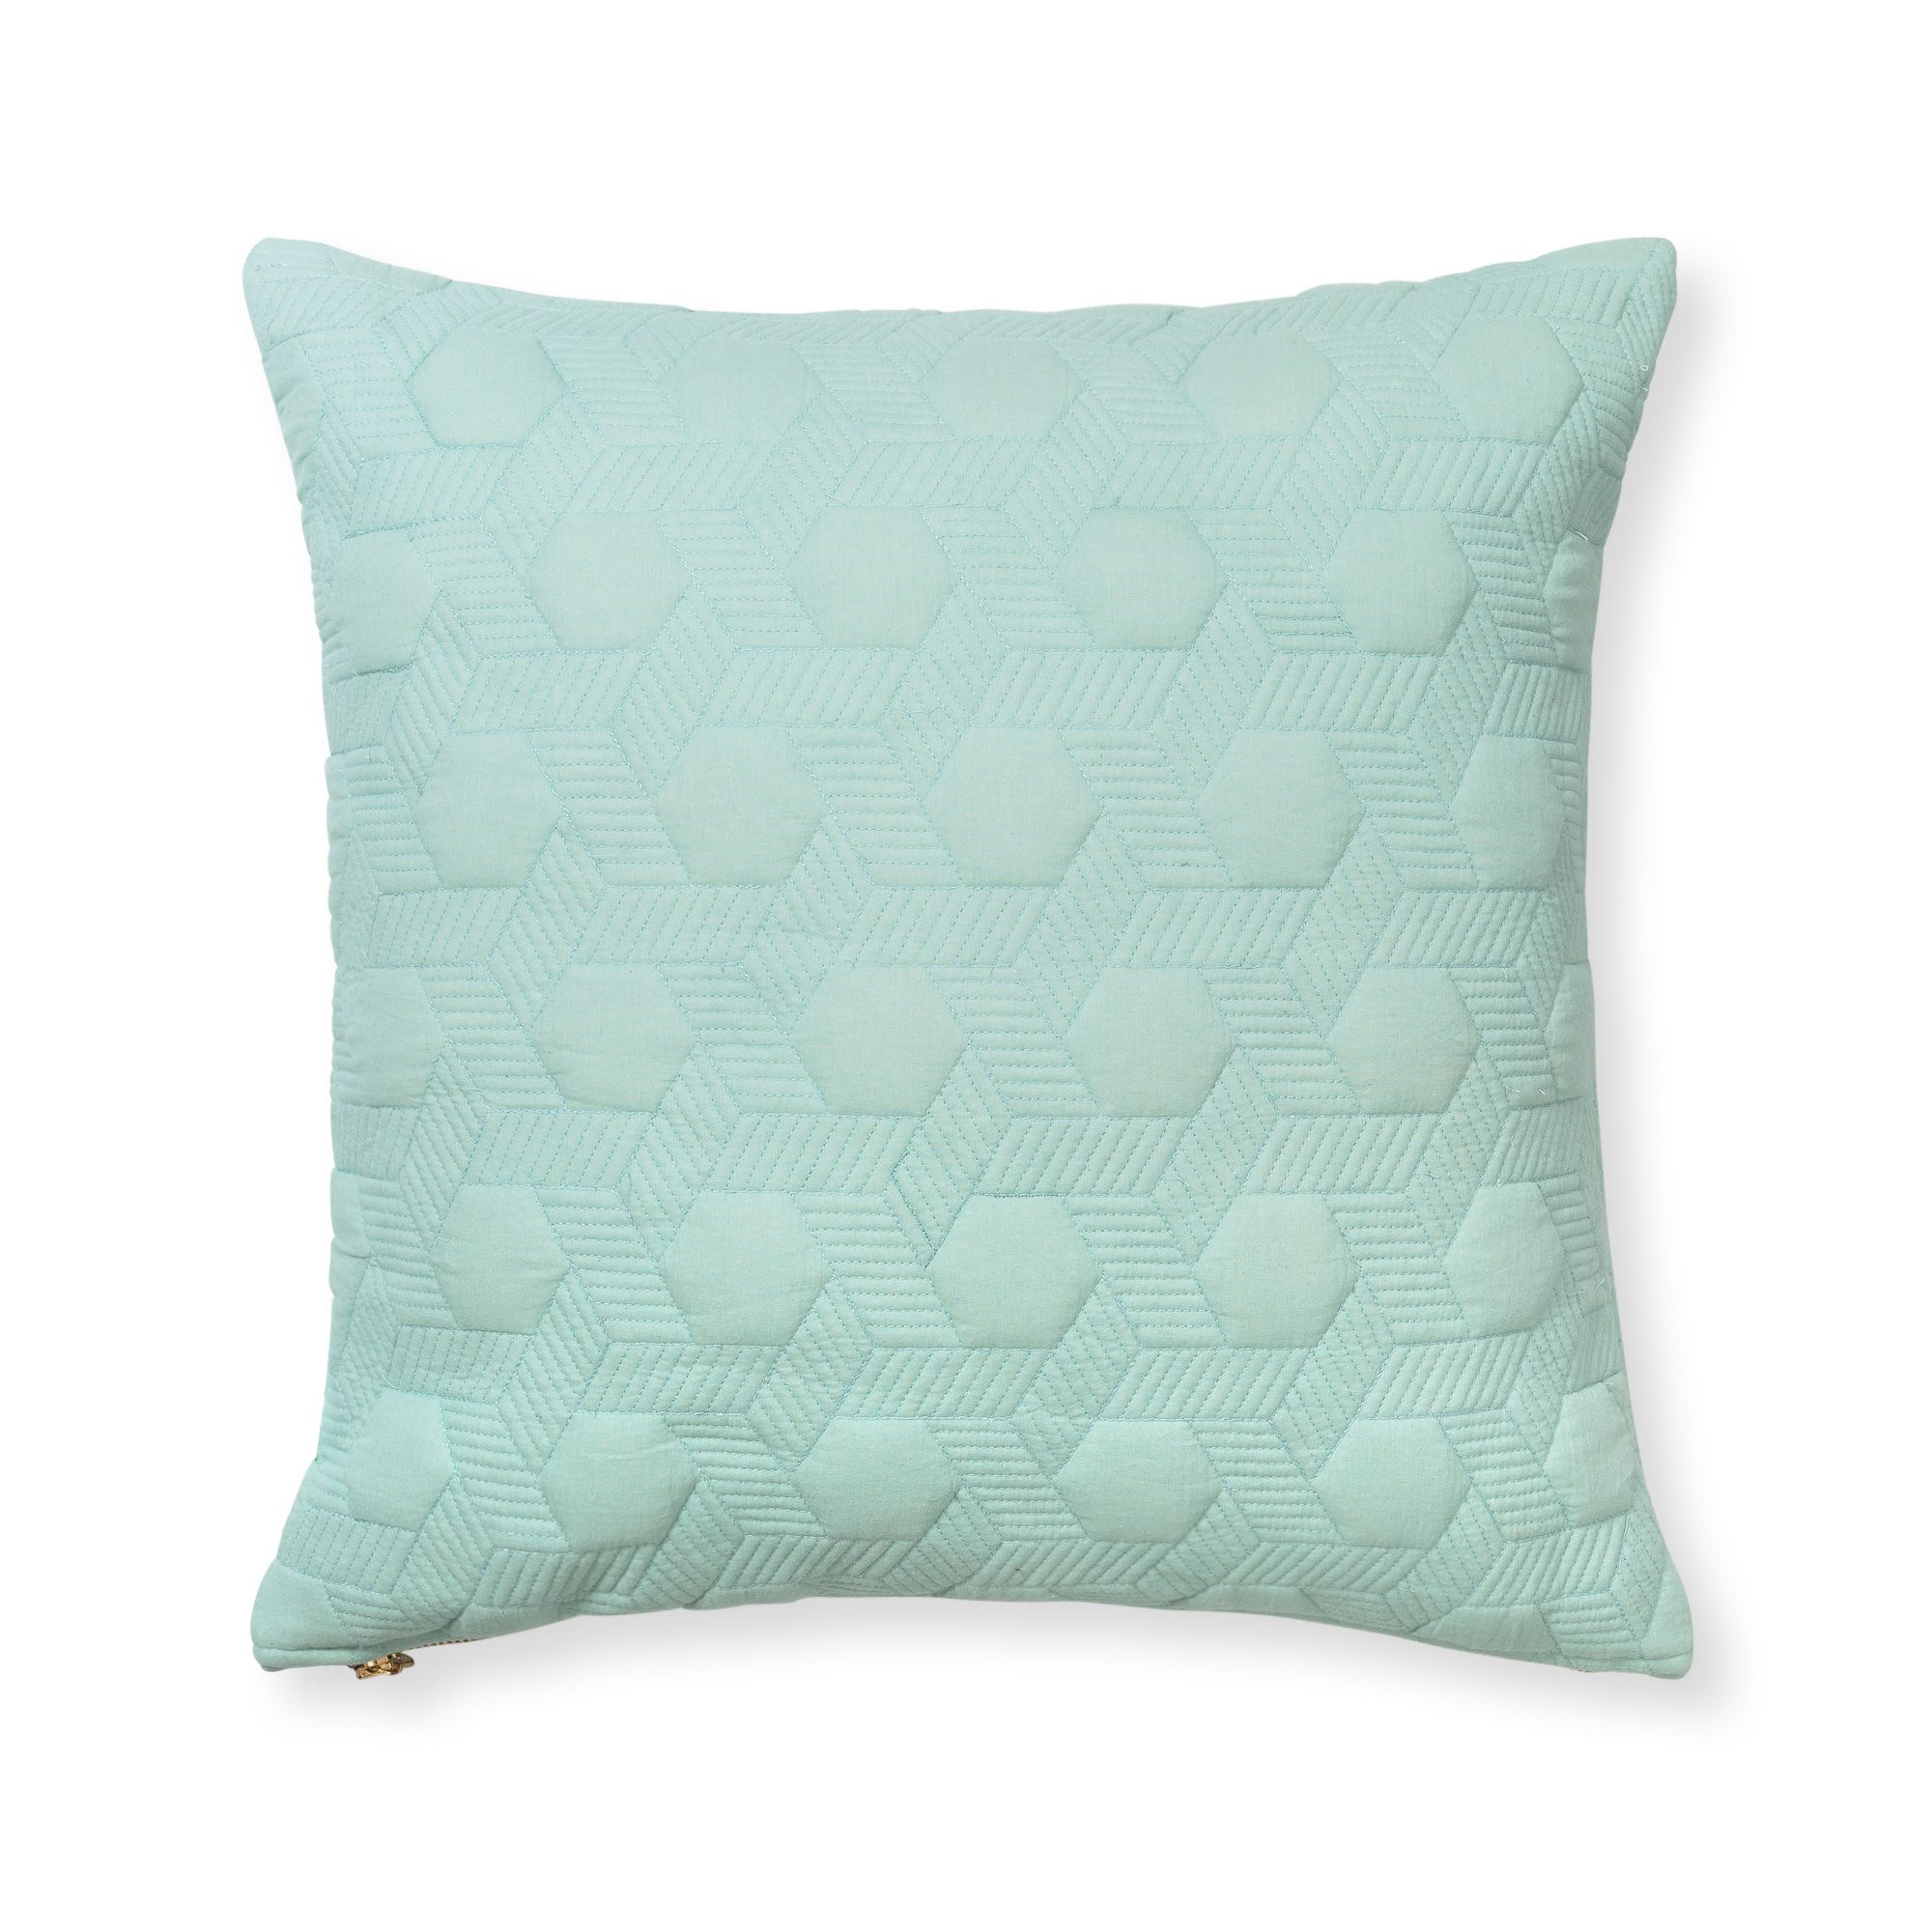 Quilted Cushion | Oliver bonas, Free uk and Bedrooms : quilted cushions - Adamdwight.com